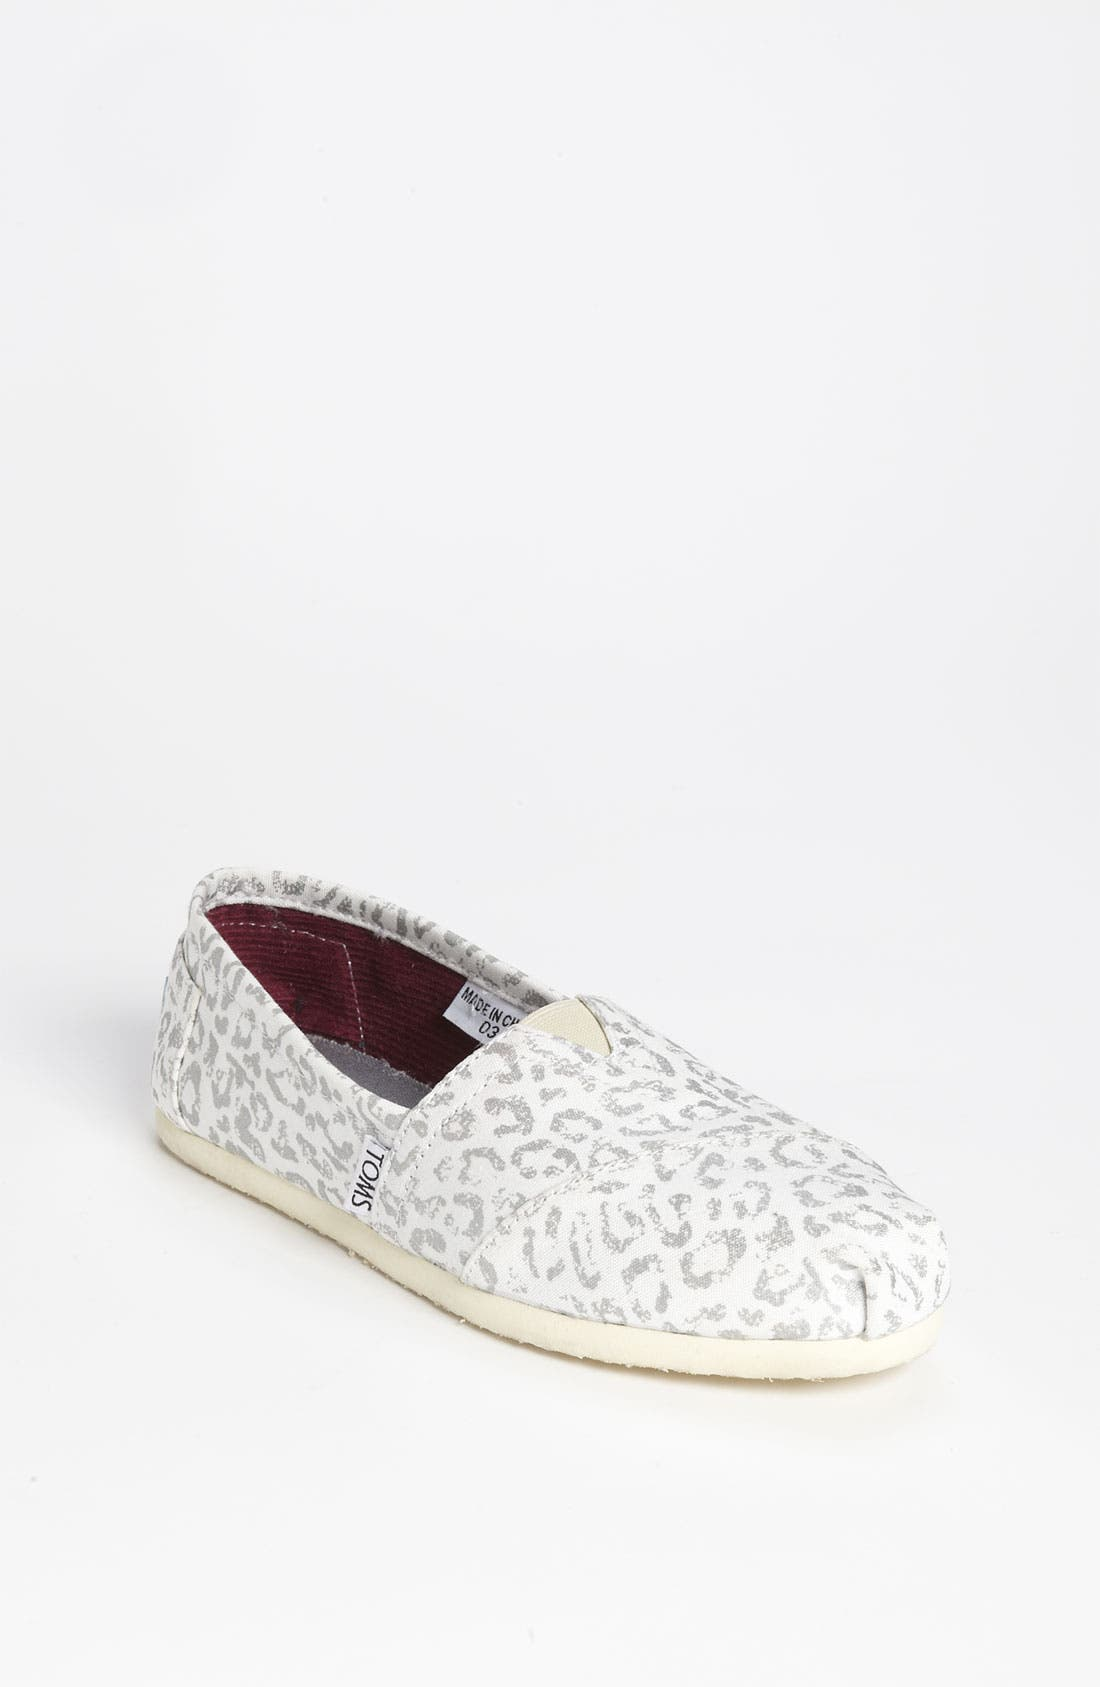 Alternate Image 1 Selected - TOMS 'Classic - Snow Leopard' Slip-On (Women)